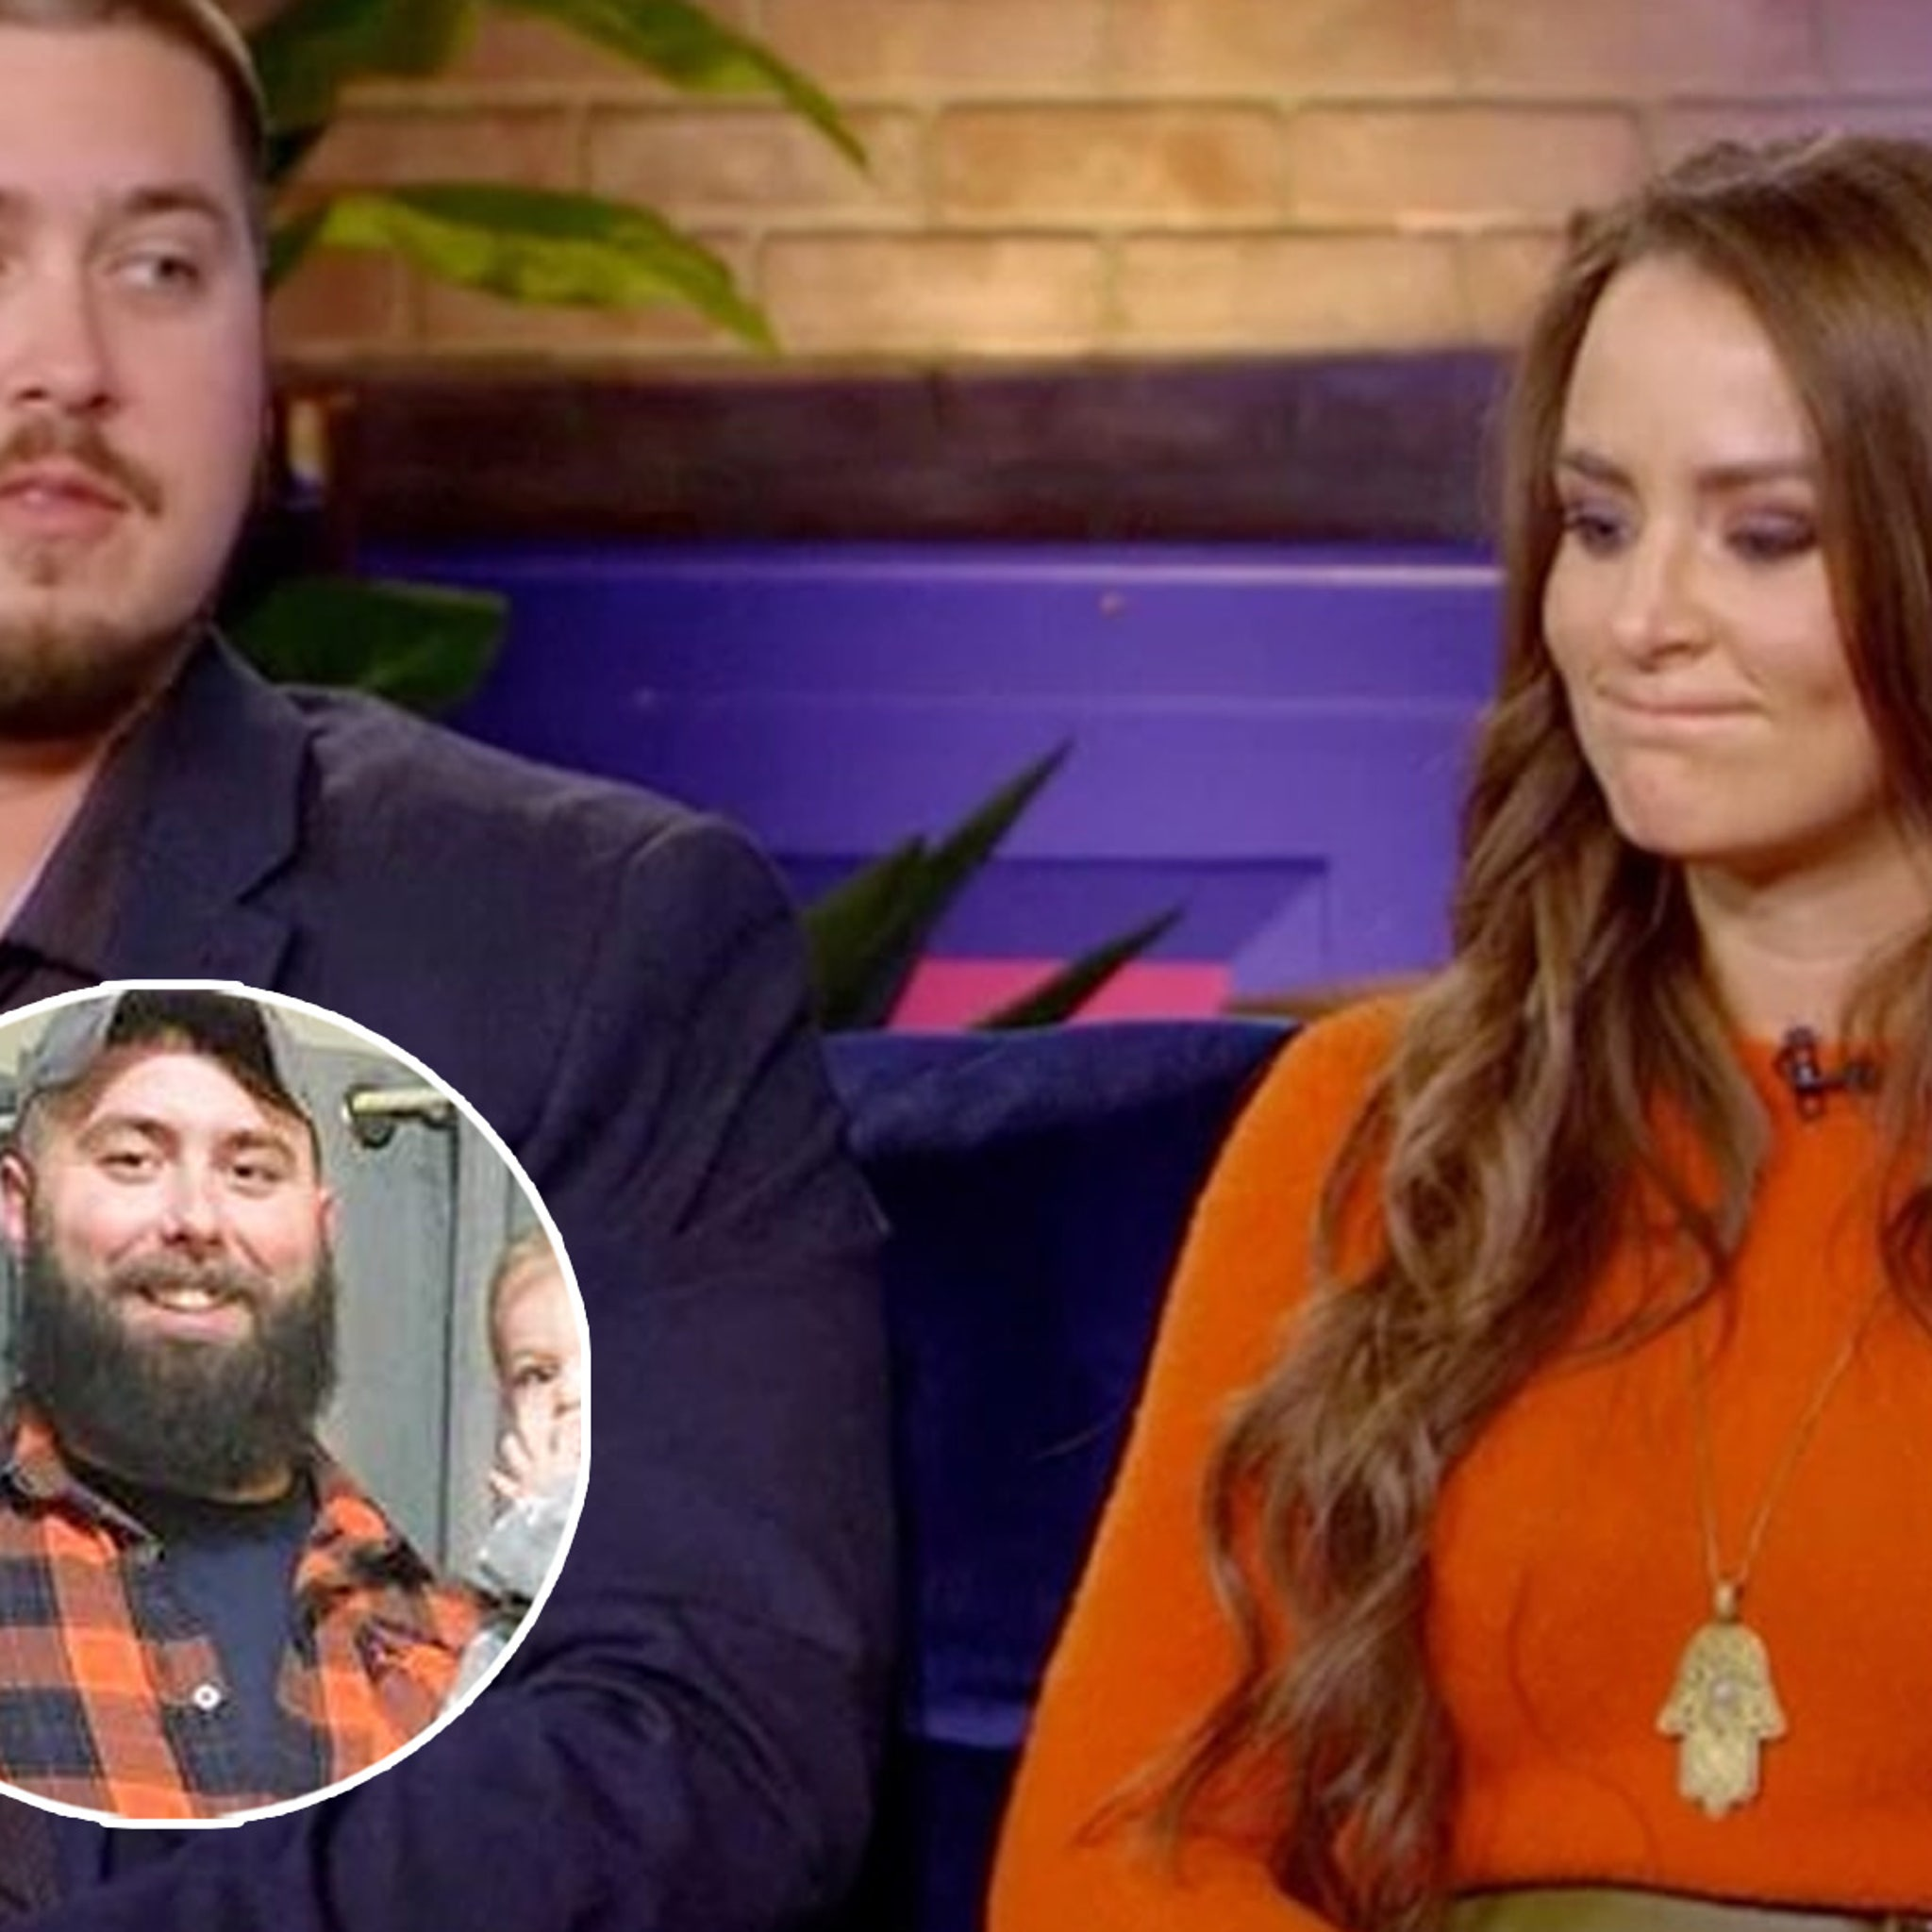 Where Leah Messer Jeremy Calvert And Corey Simms Stand After Teen Mom Finale Fallout